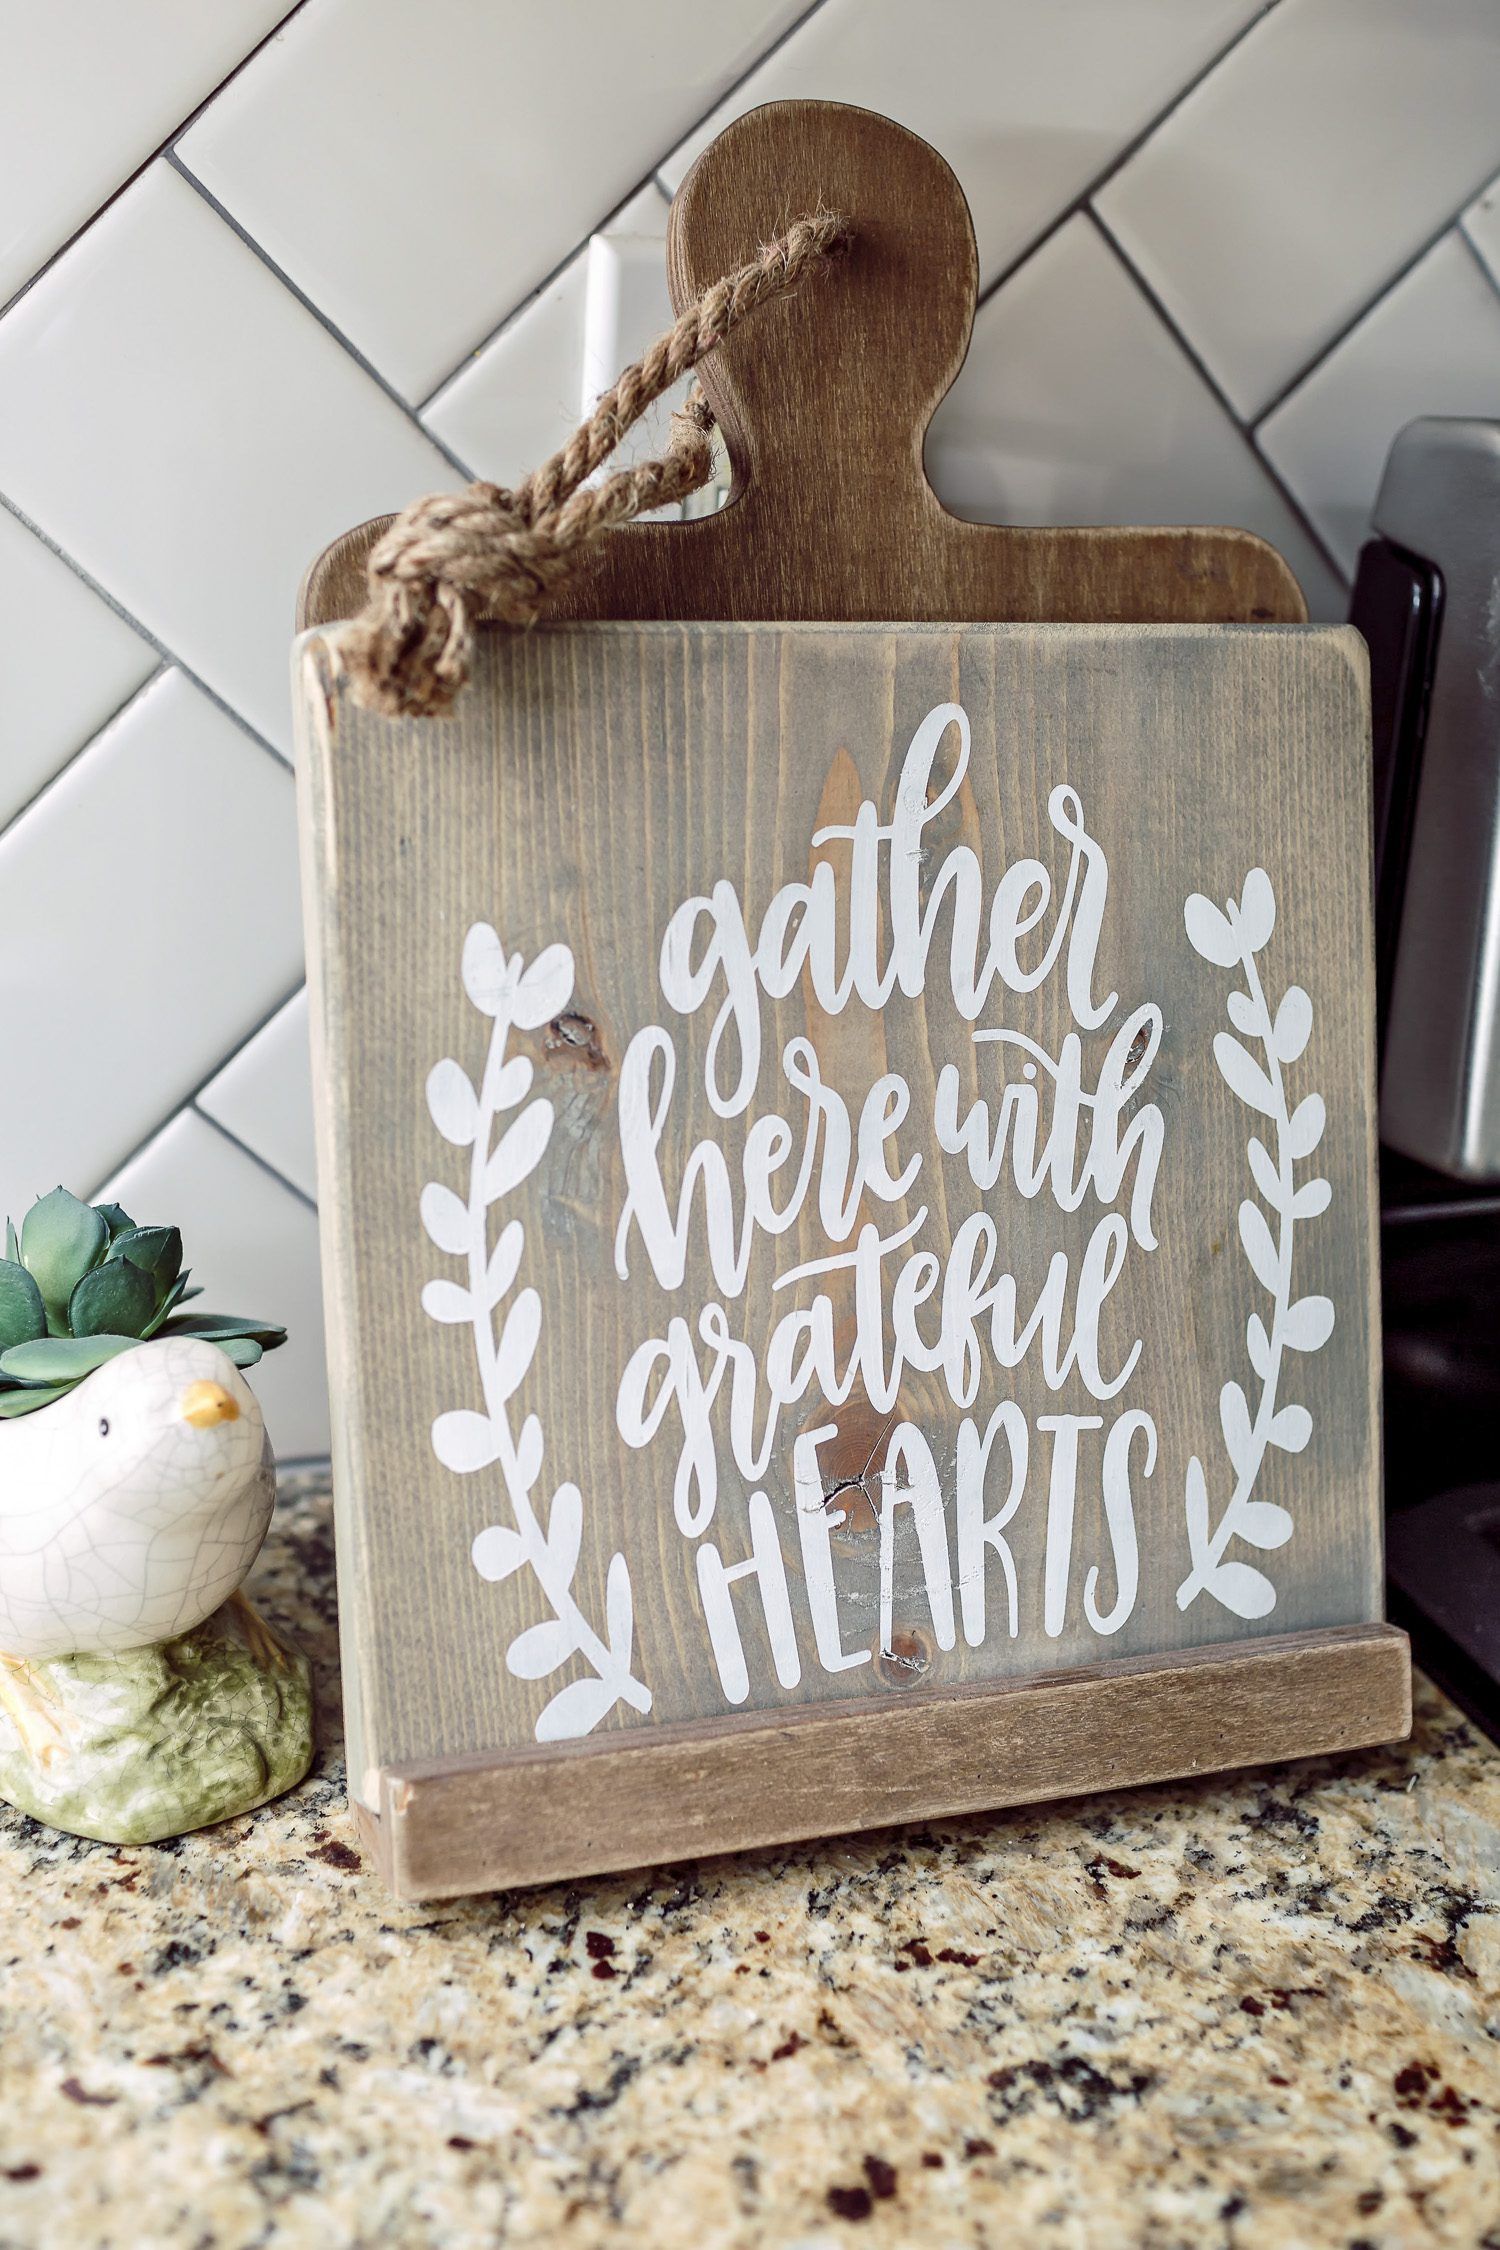 Have you wondered where to get beautifully handcrafted home decor? I've rounded up my favorite sign makers, making it easy to add character to your home.